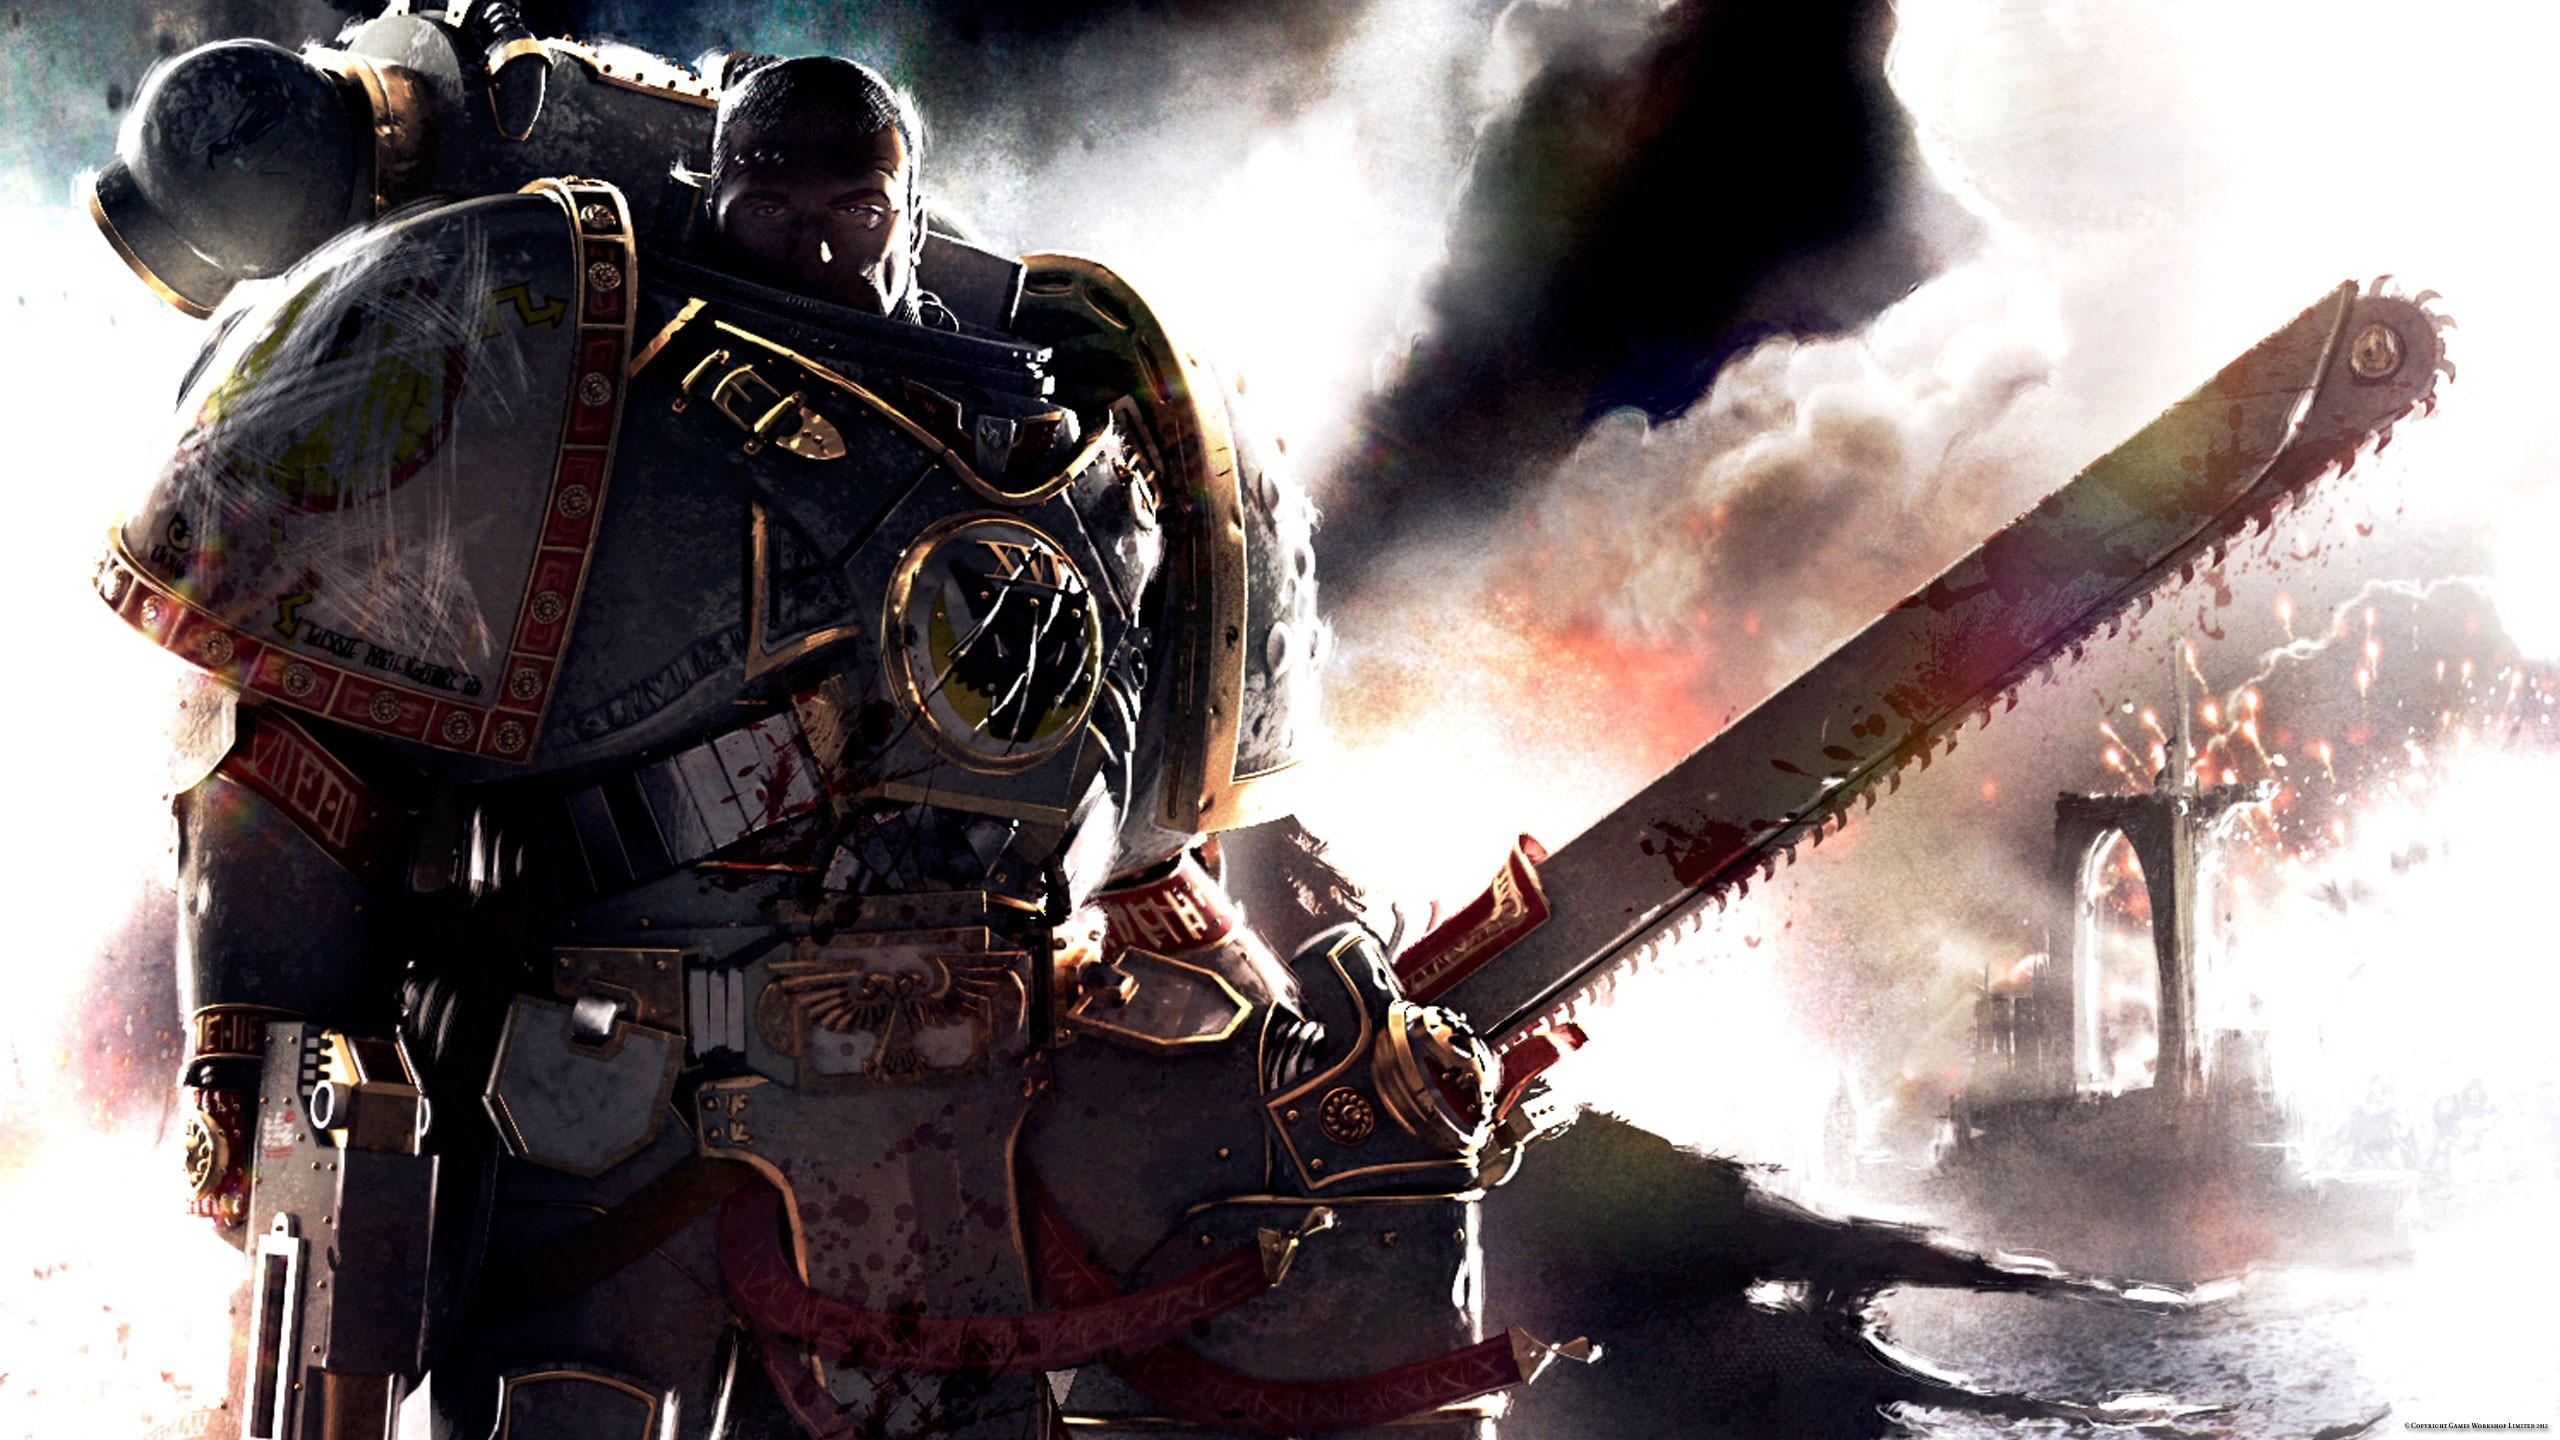 2560x1440 Space Marines Wallpaper Contribute to this | space marines, exosuits,  future warfare | Pinterest | Space marine, Warhammer 40k and Warhammer 40K